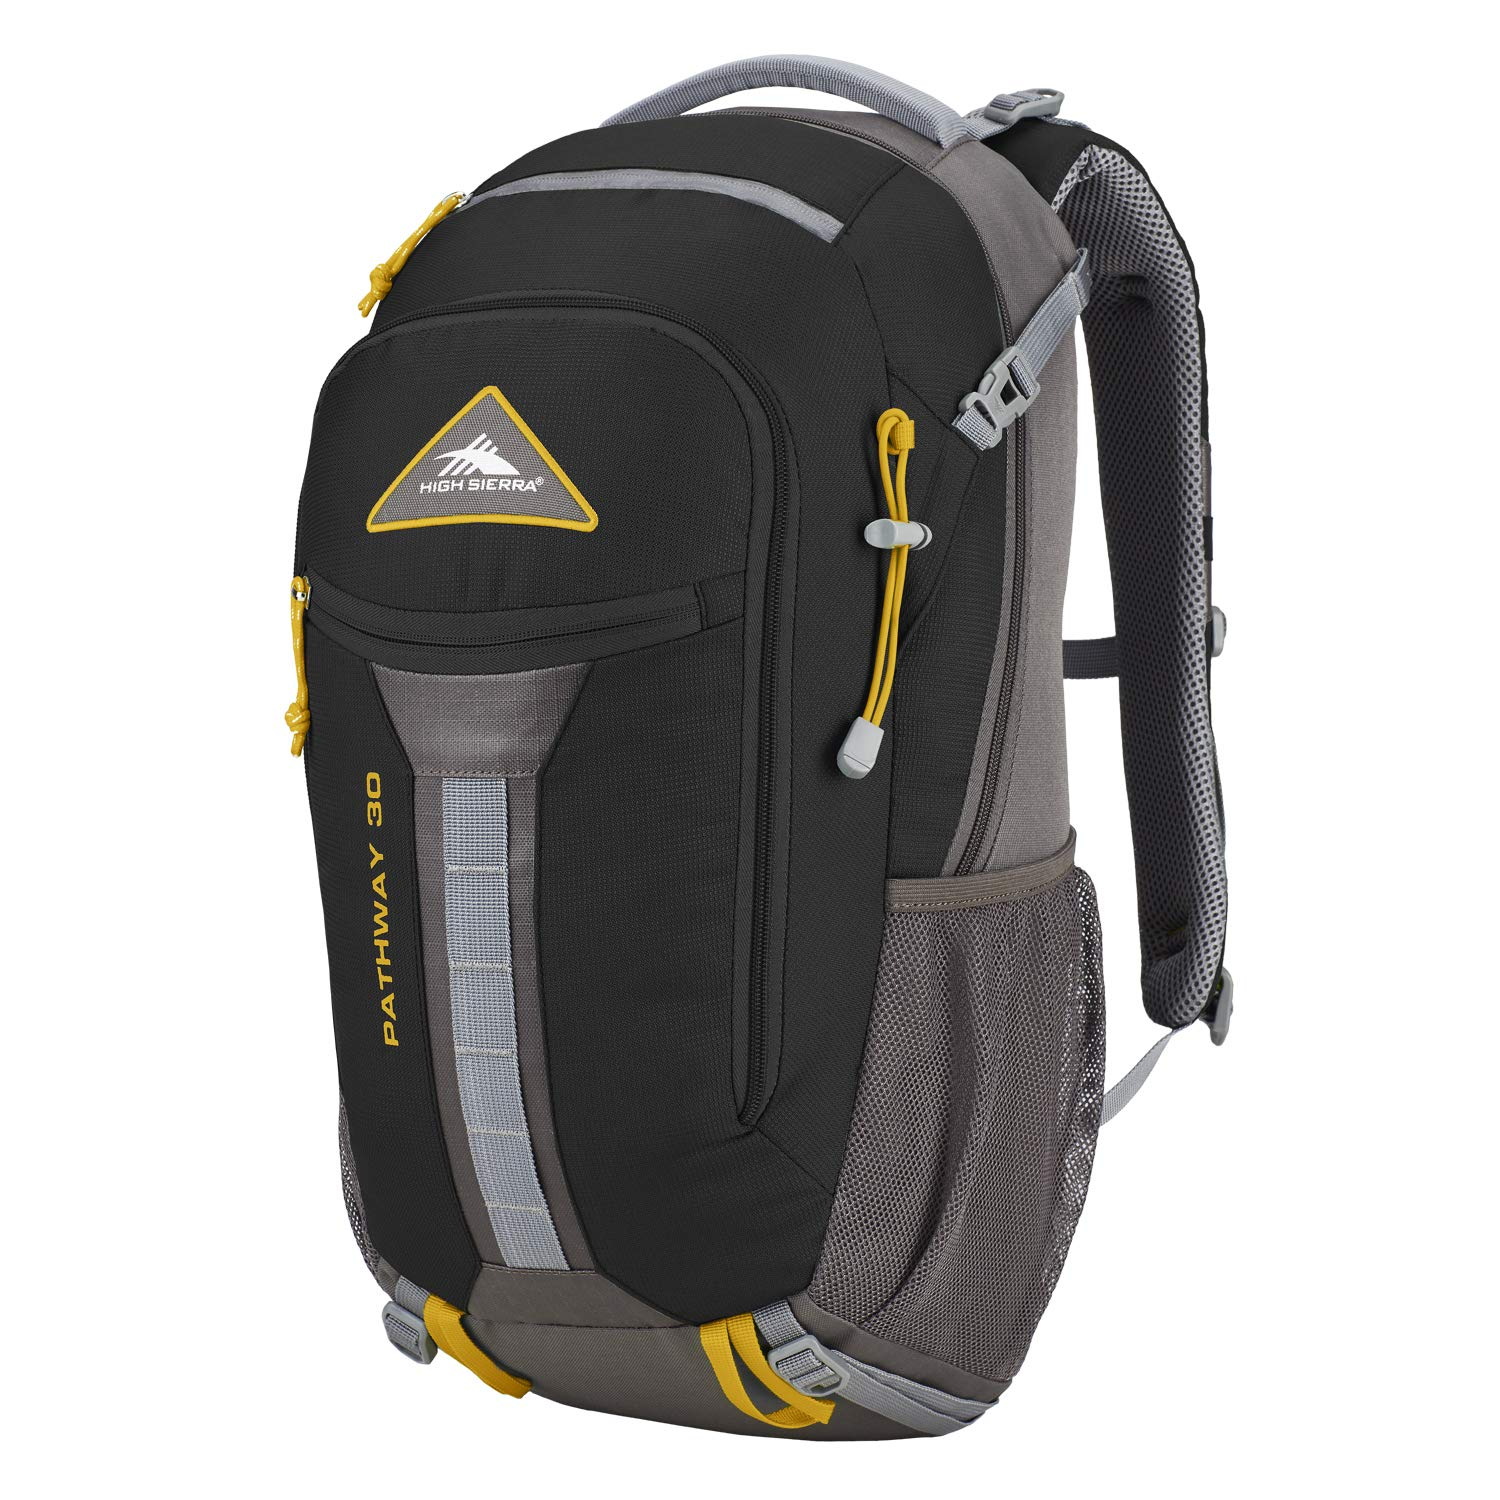 Mineral//Slate//Glacier High Sierra Pathway 60L Backpack